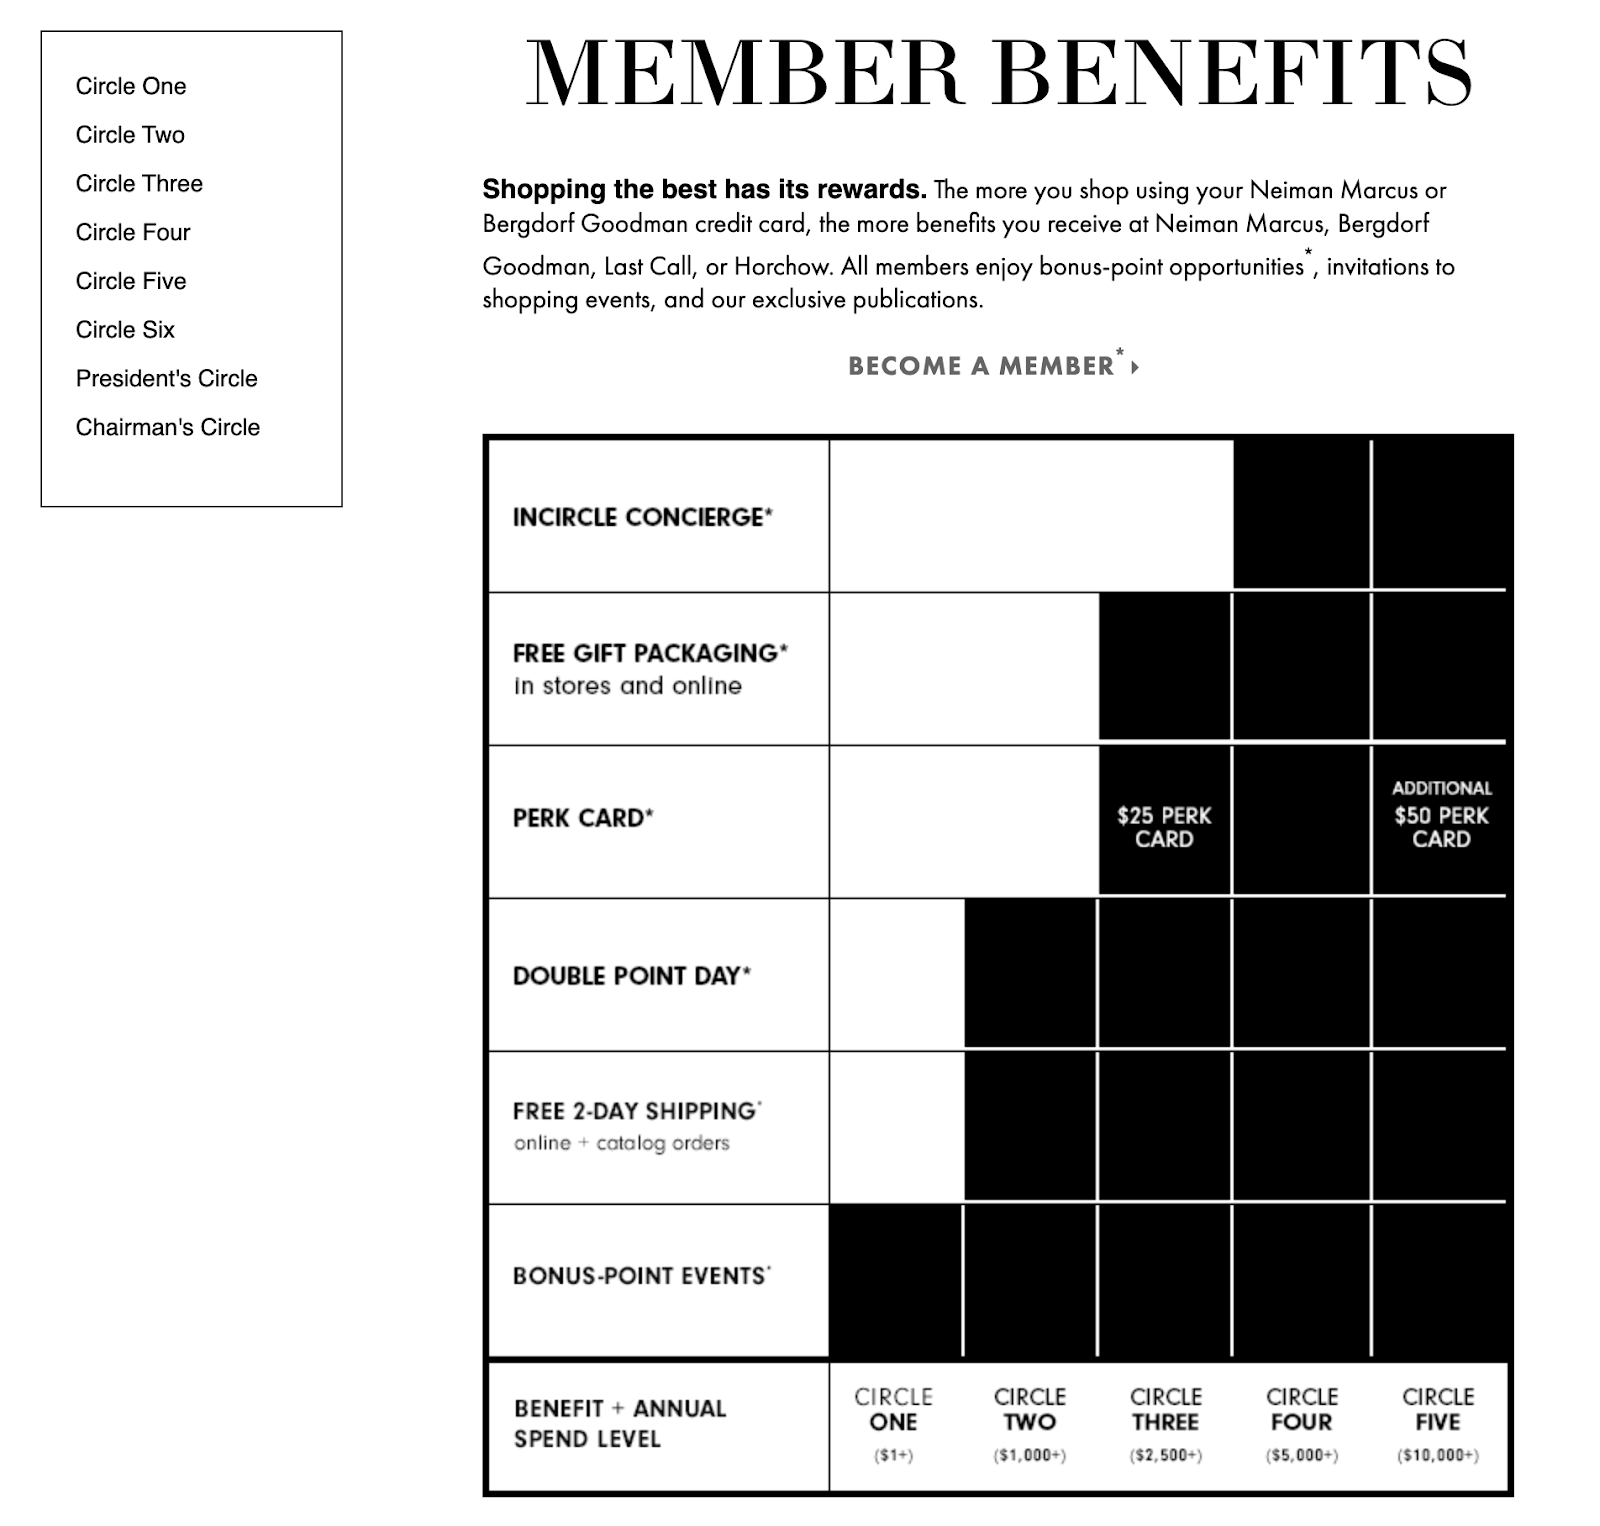 In general, loyalty programs have three to four tiers to avoid confusing their members. Luxury fashion loyalty programs, however, deal with exclusive benefits, which calls for ranks to climb, otherwise, members could reach the higher tiers too quickly.